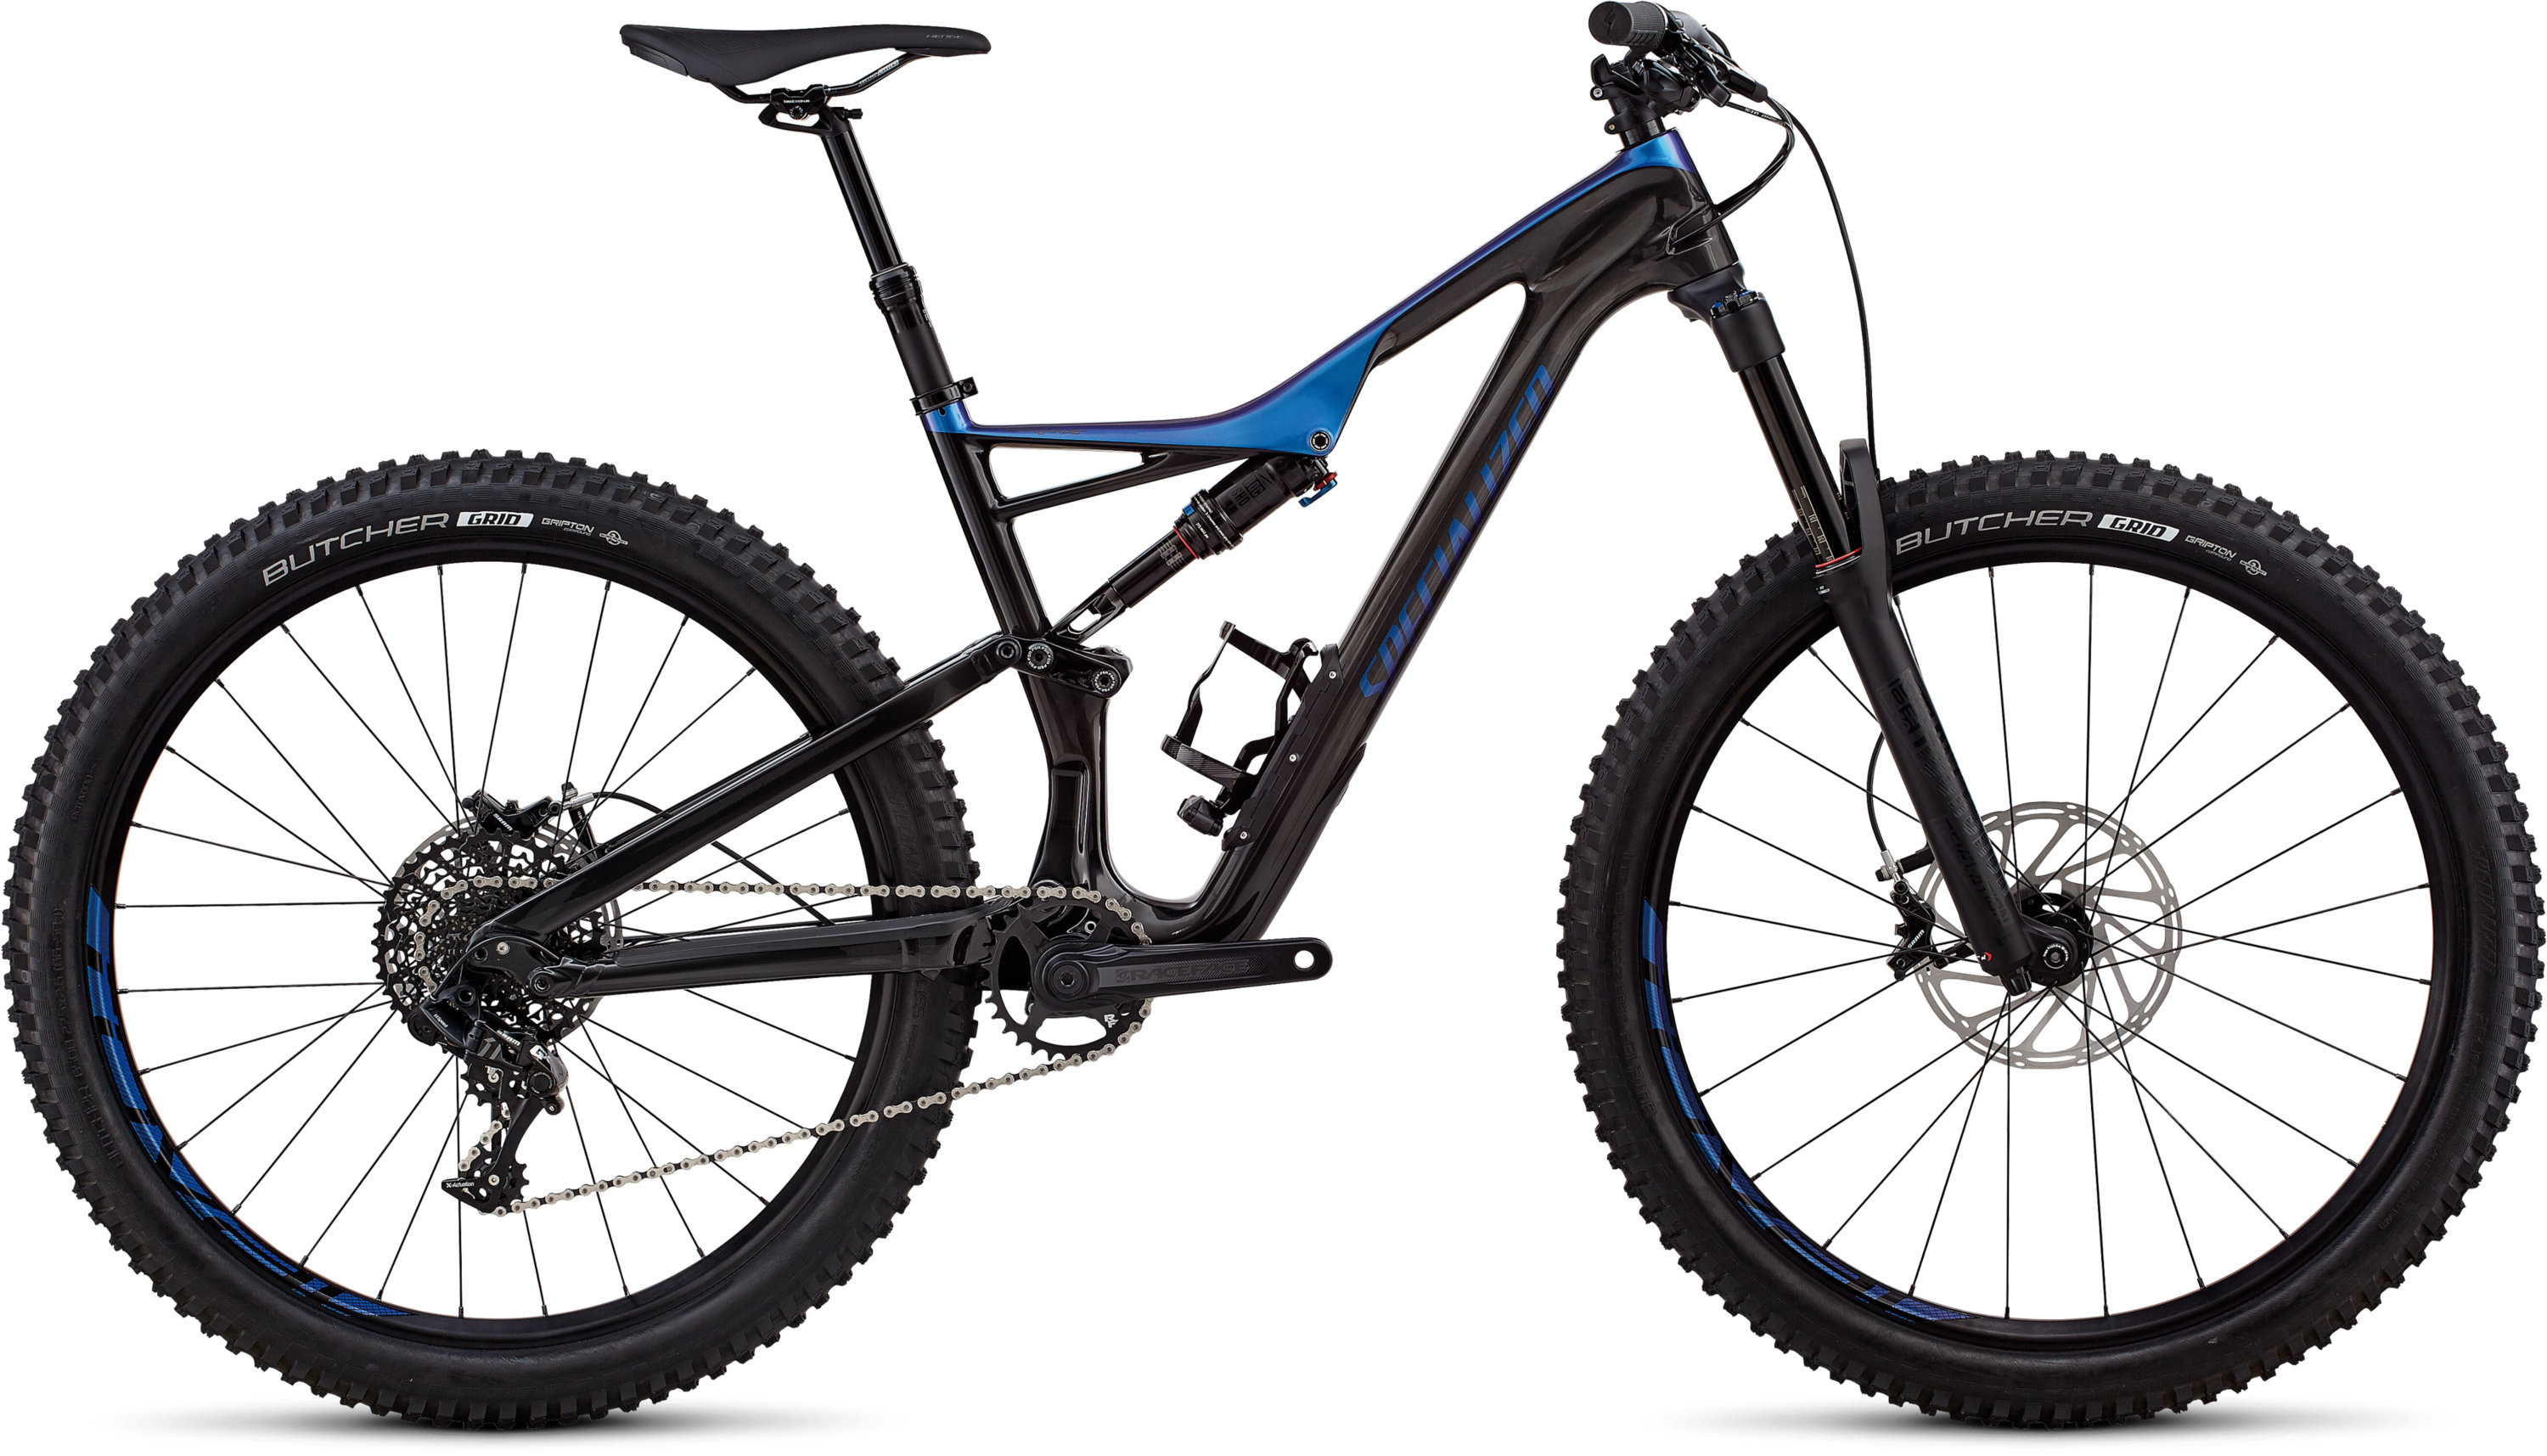 Stumpjumper Comp Carbon 27.5 | Specialized.com